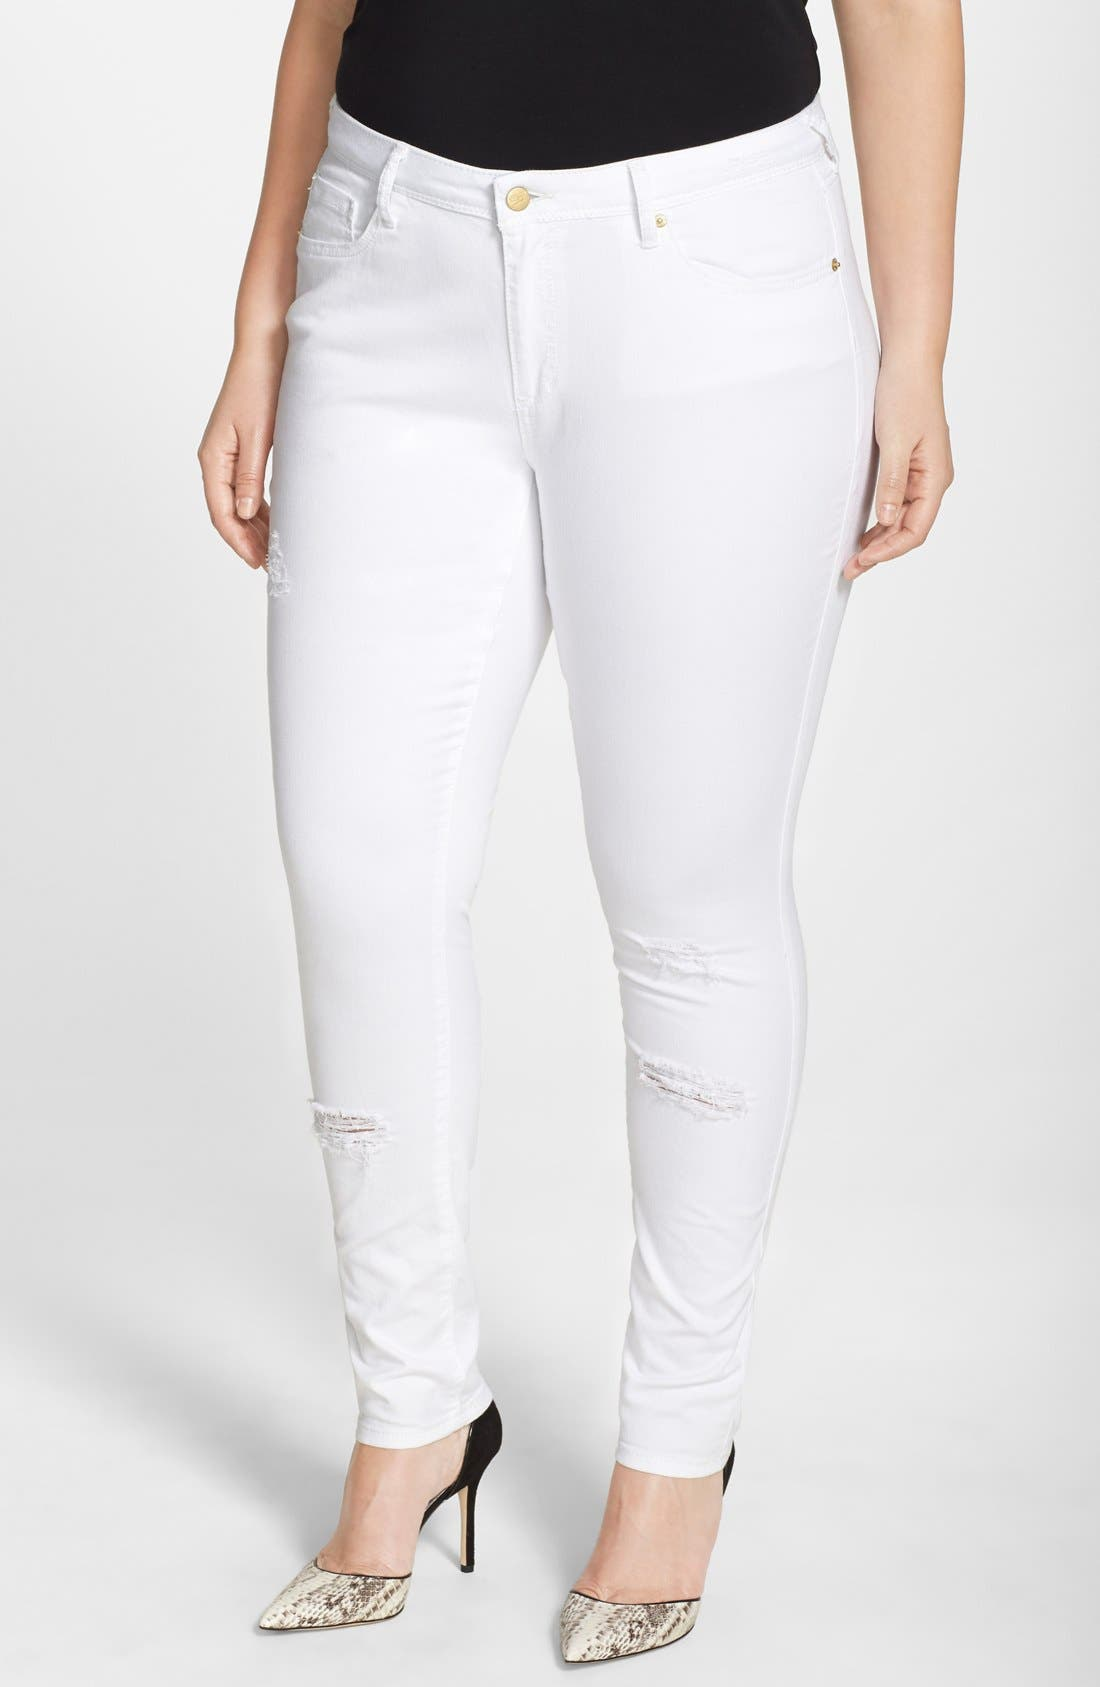 Poetic Justice 'Maya' Destroyed White Skinny Jeans (Plus Size)